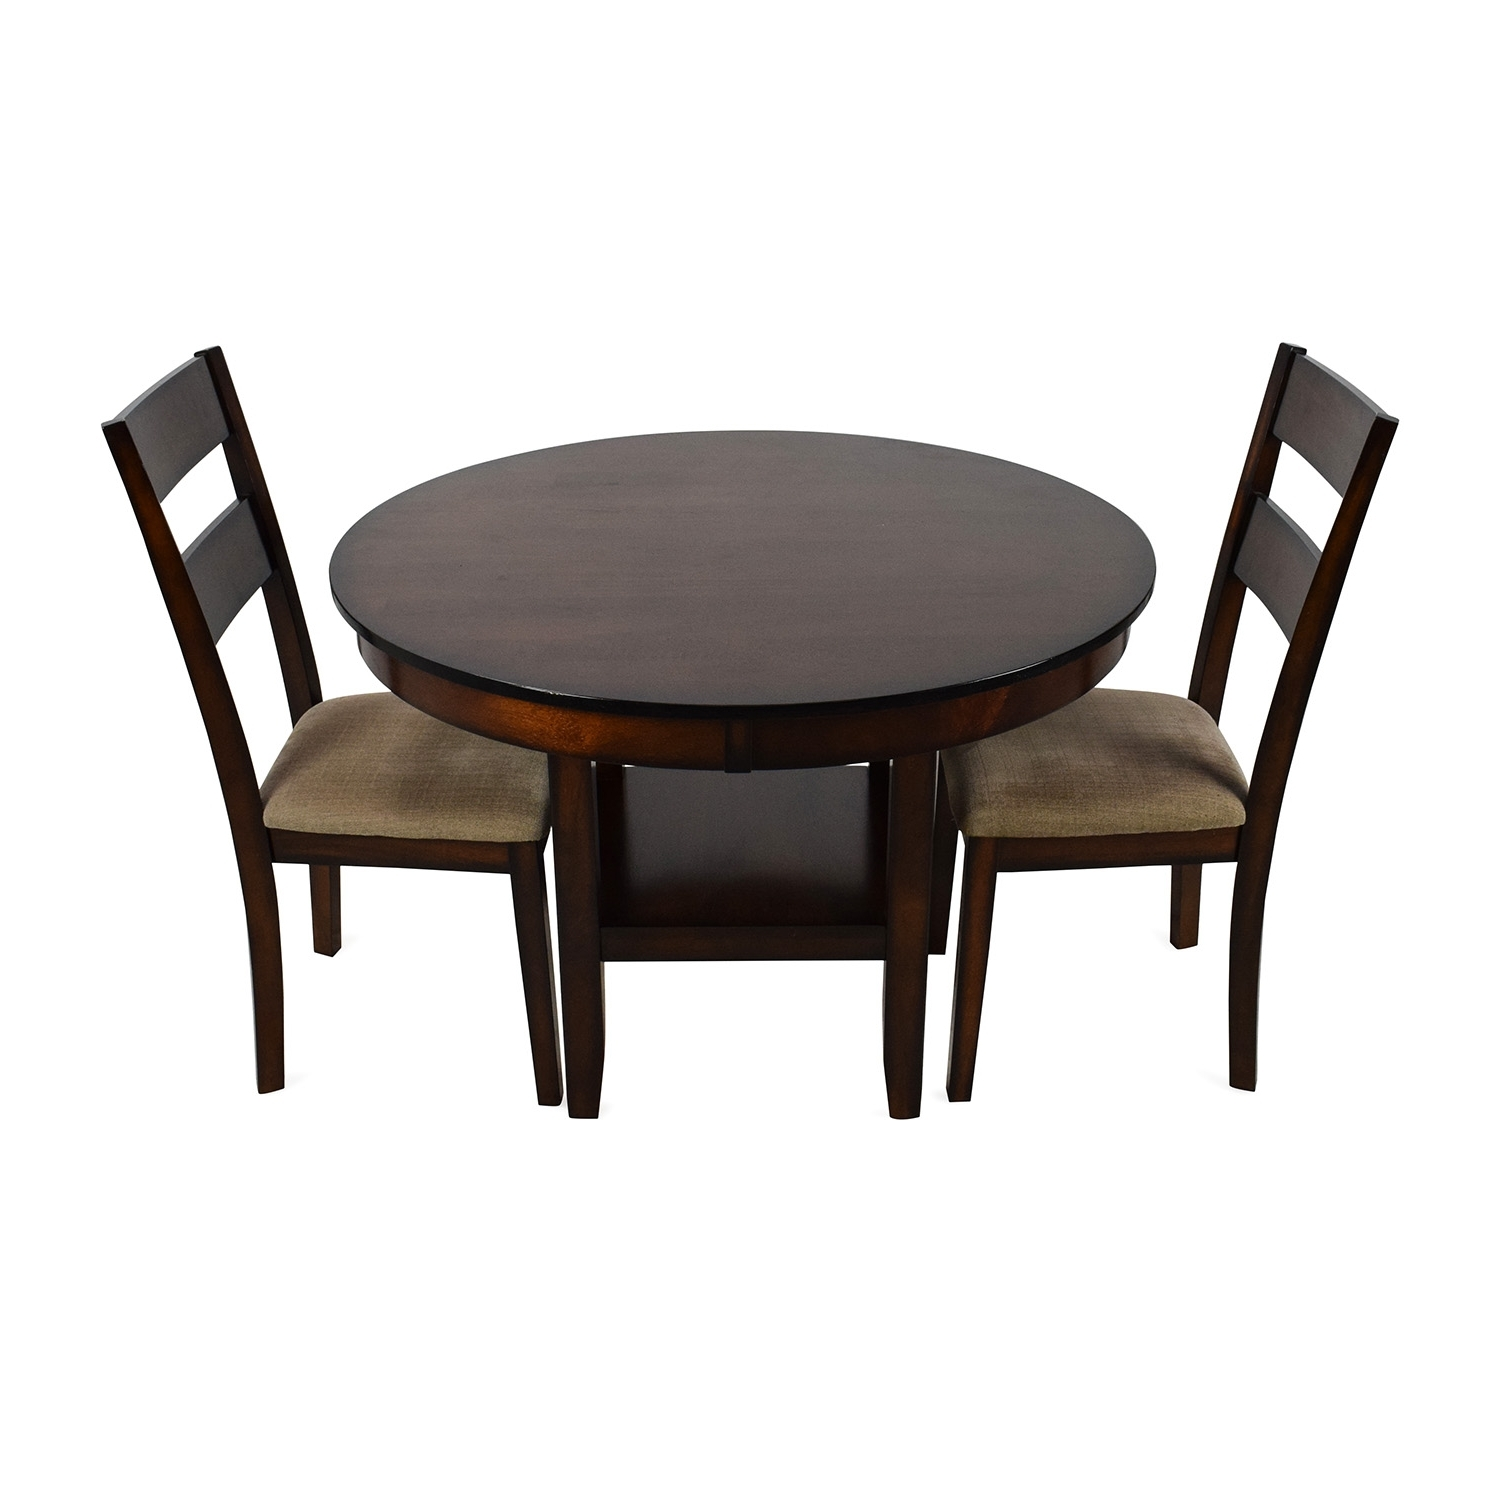 [%85% Off – Macy's Macy's Branton 3 Piece Dining Room Collection / Tables For Most Popular Macie 5 Piece Round Dining Sets|Macie 5 Piece Round Dining Sets In Current 85% Off – Macy's Macy's Branton 3 Piece Dining Room Collection / Tables|Most Recent Macie 5 Piece Round Dining Sets With Regard To 85% Off – Macy's Macy's Branton 3 Piece Dining Room Collection / Tables|Well Liked 85% Off – Macy's Macy's Branton 3 Piece Dining Room Collection / Tables Within Macie 5 Piece Round Dining Sets%] (View 17 of 25)